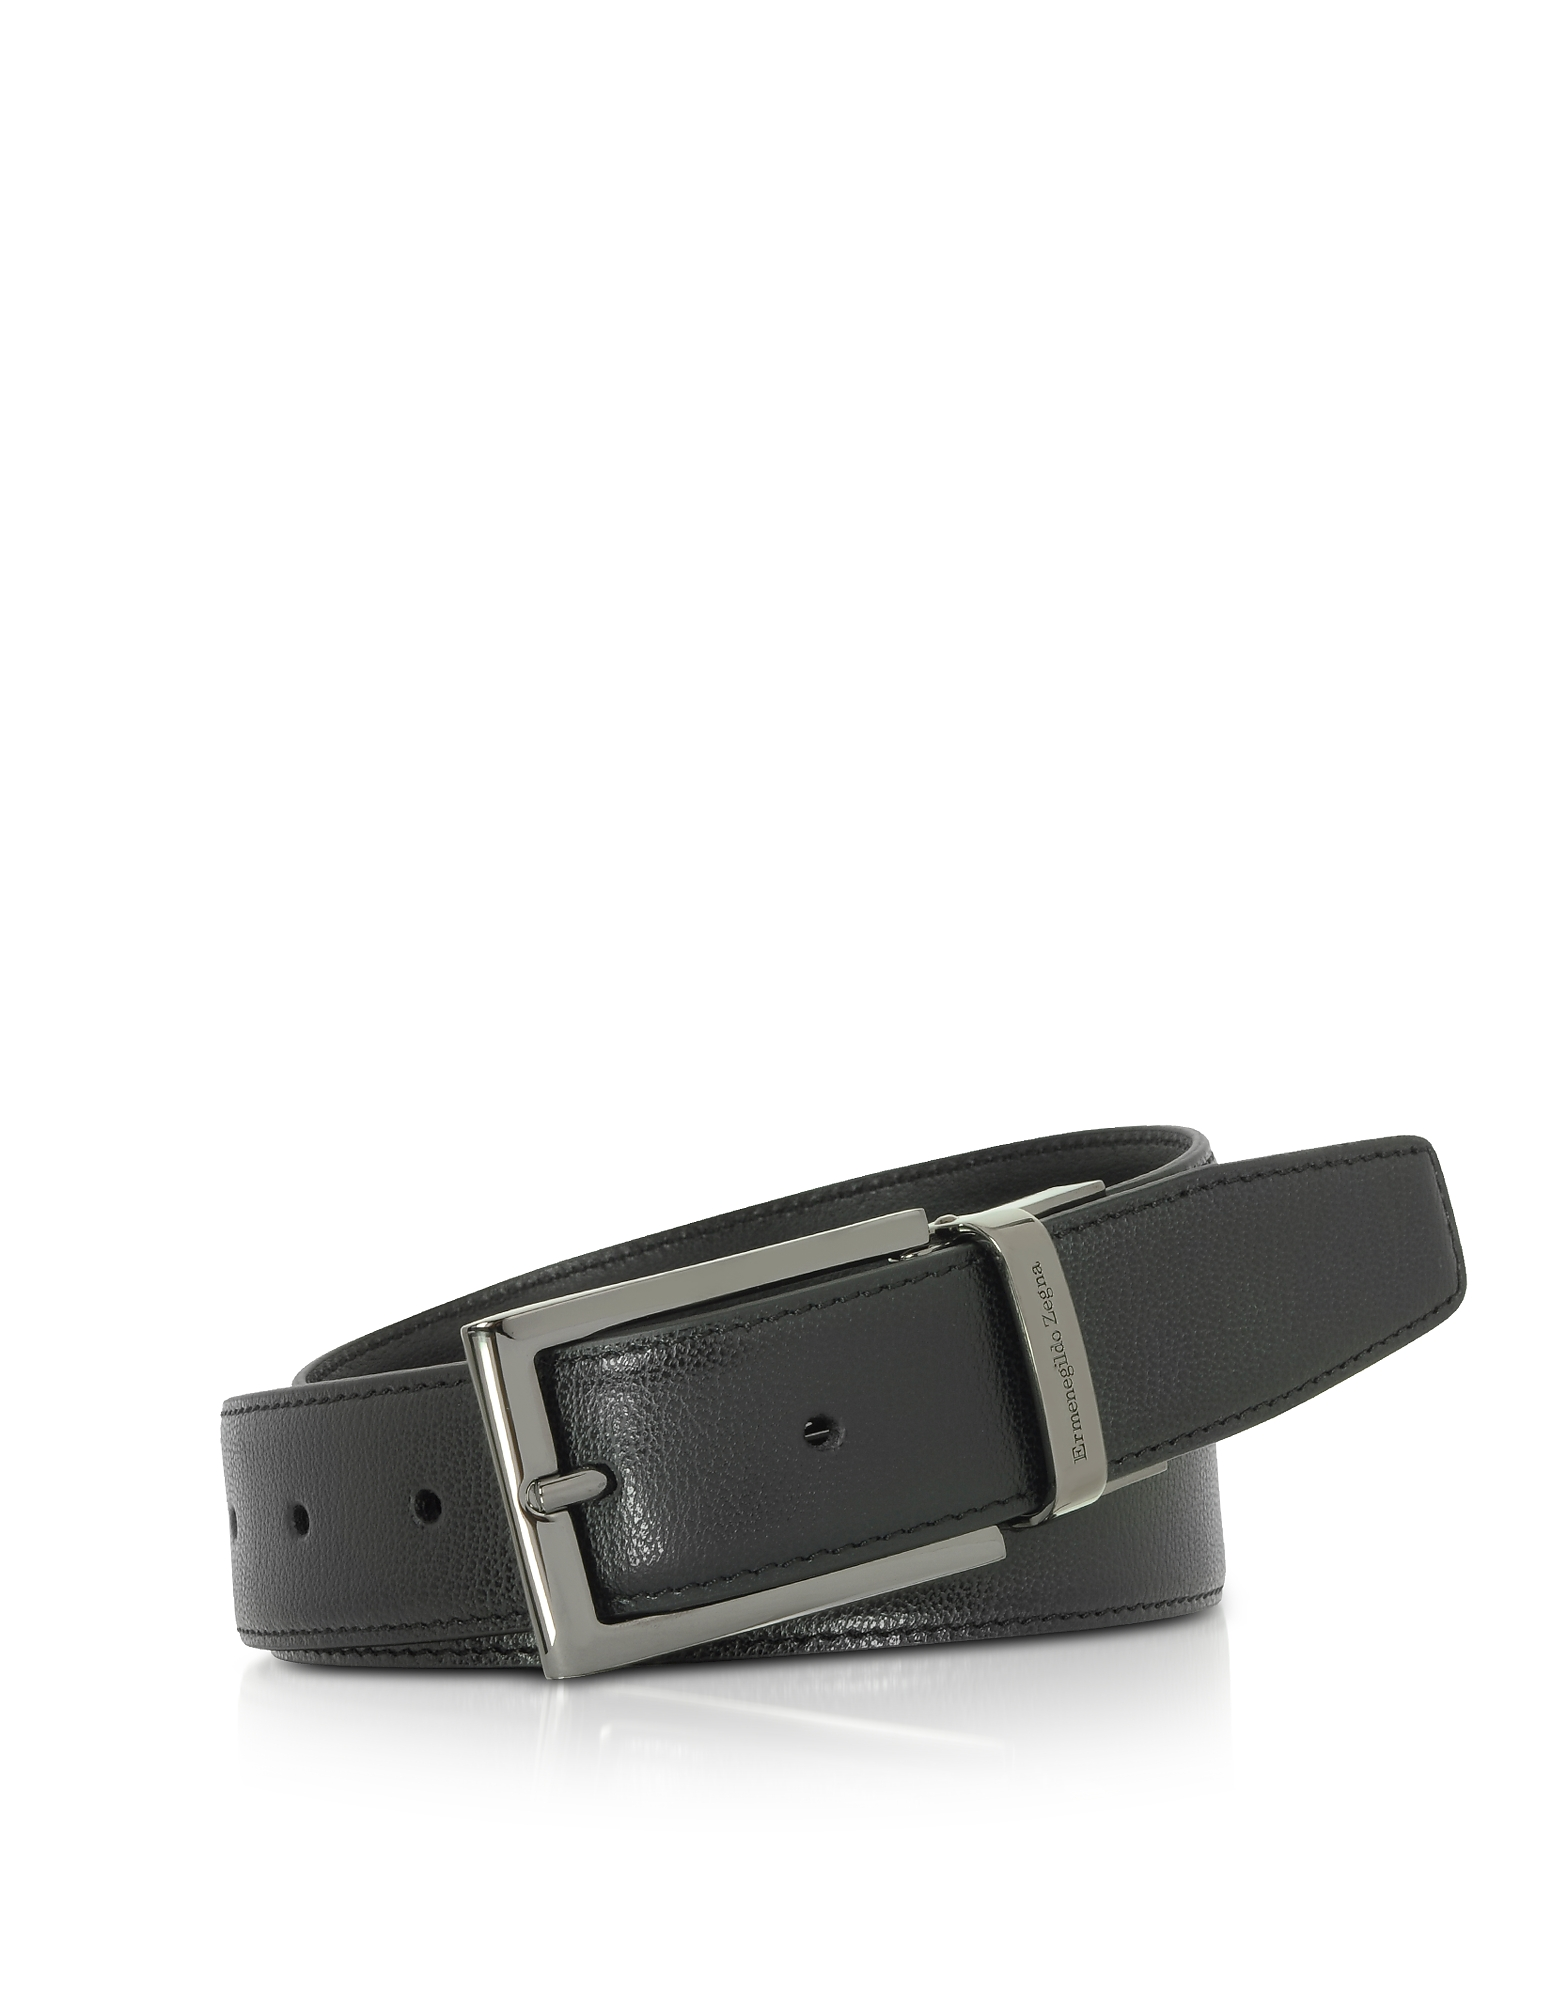 Black Leather Reversible & Adjustable Belt